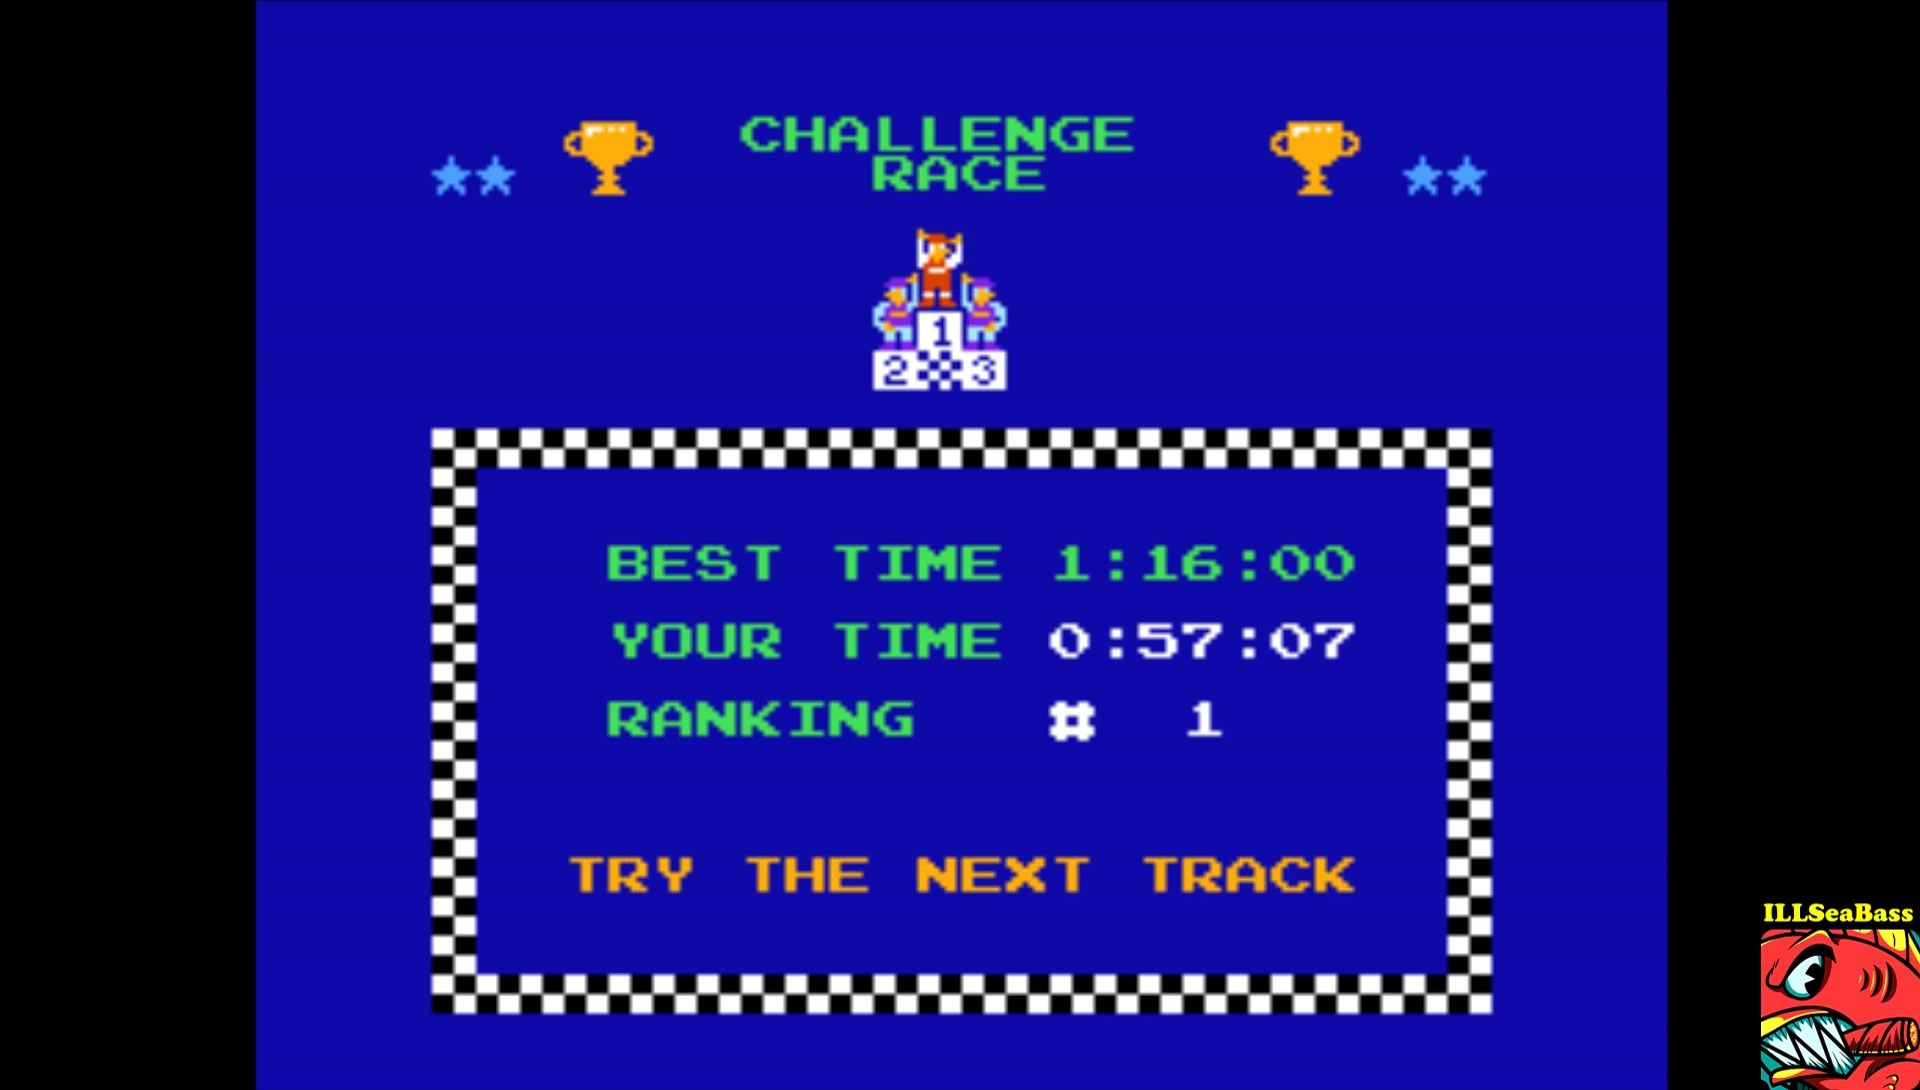 Excitebike: Track 2 time of 0:00:57.07